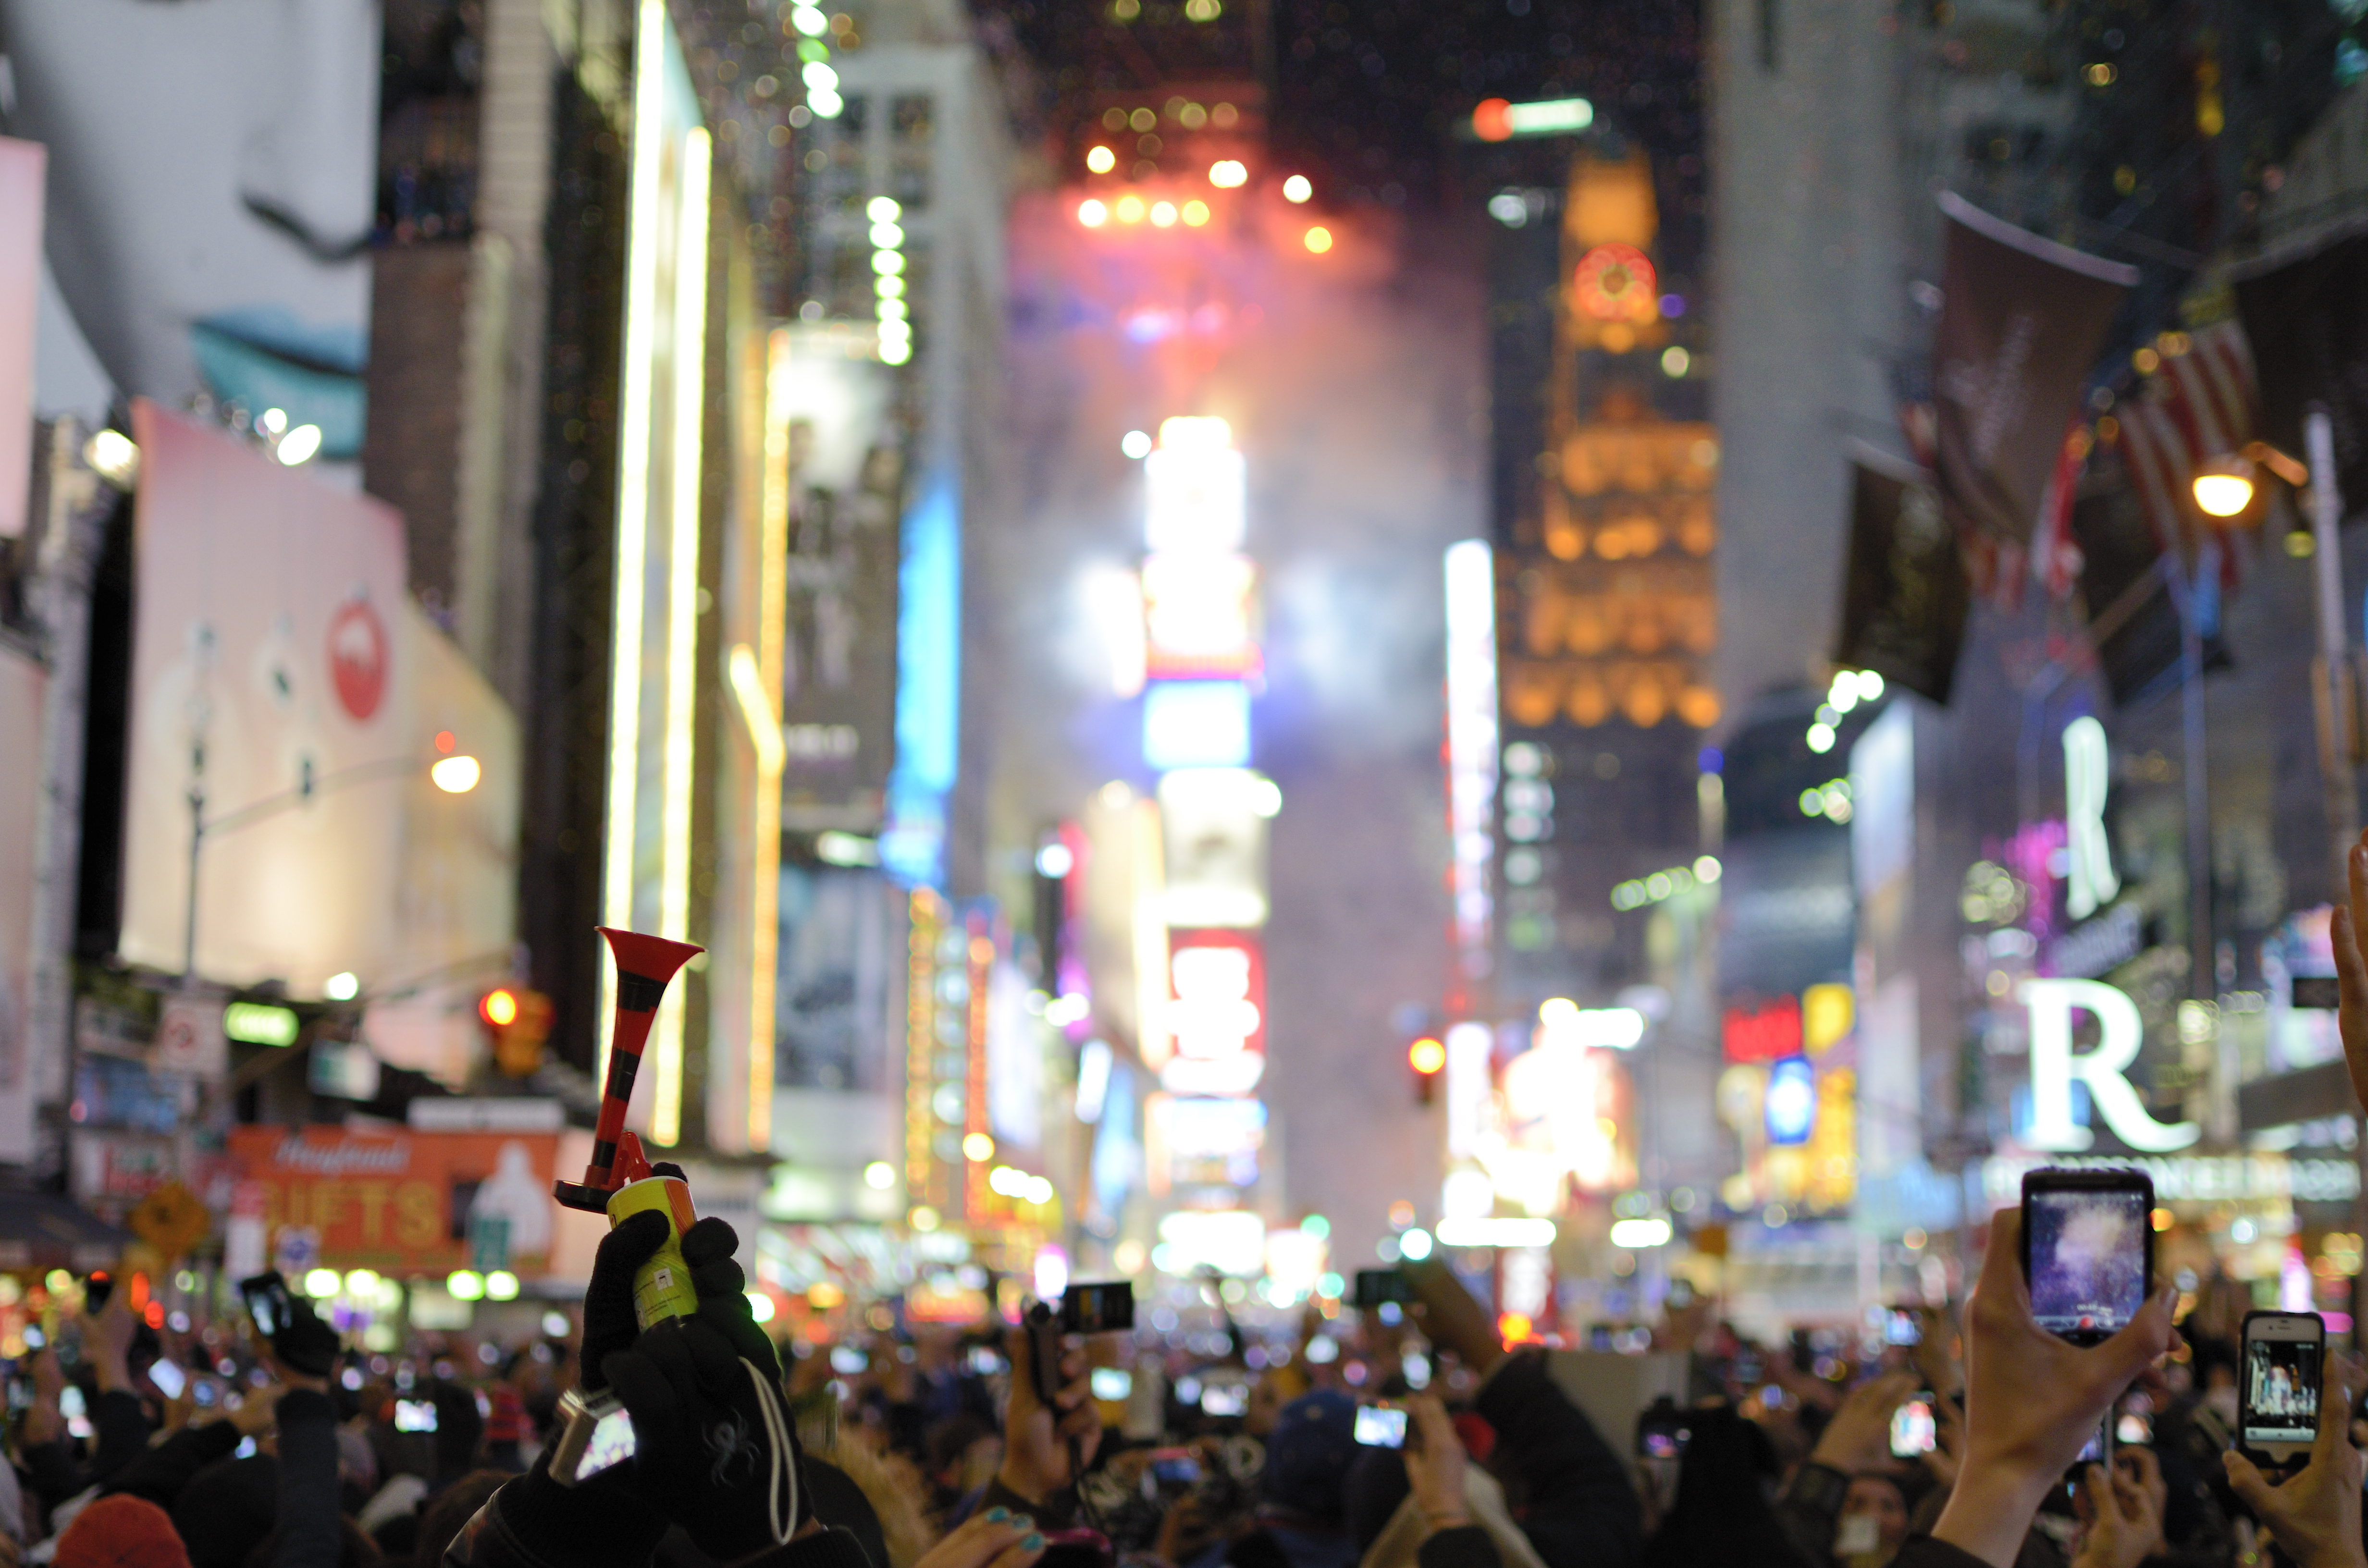 New Year's Eve celebration in Times Square, New York City.